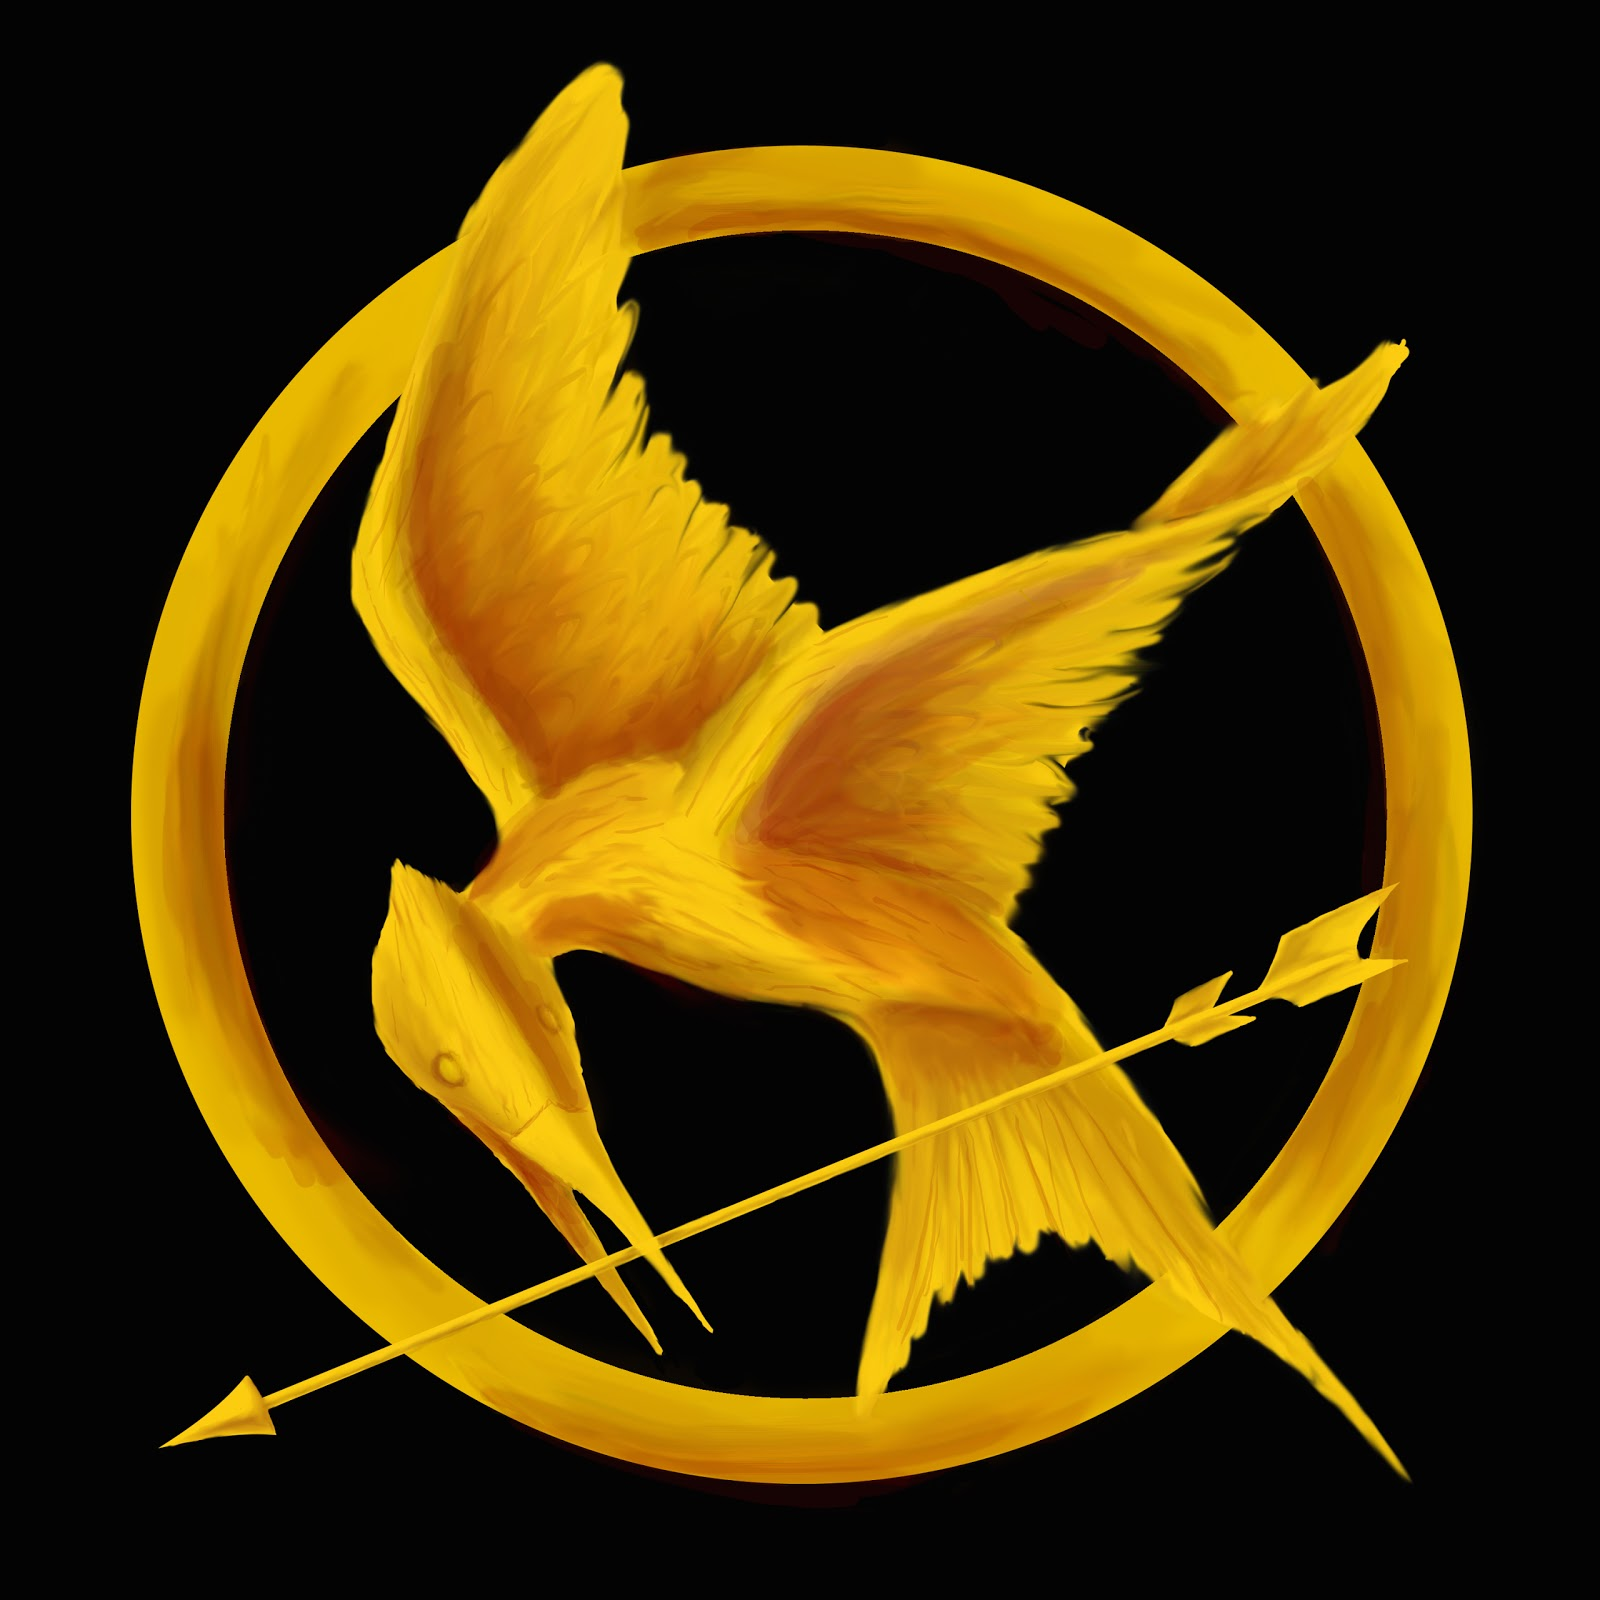 Hunger Games Logo Clipart Free Image